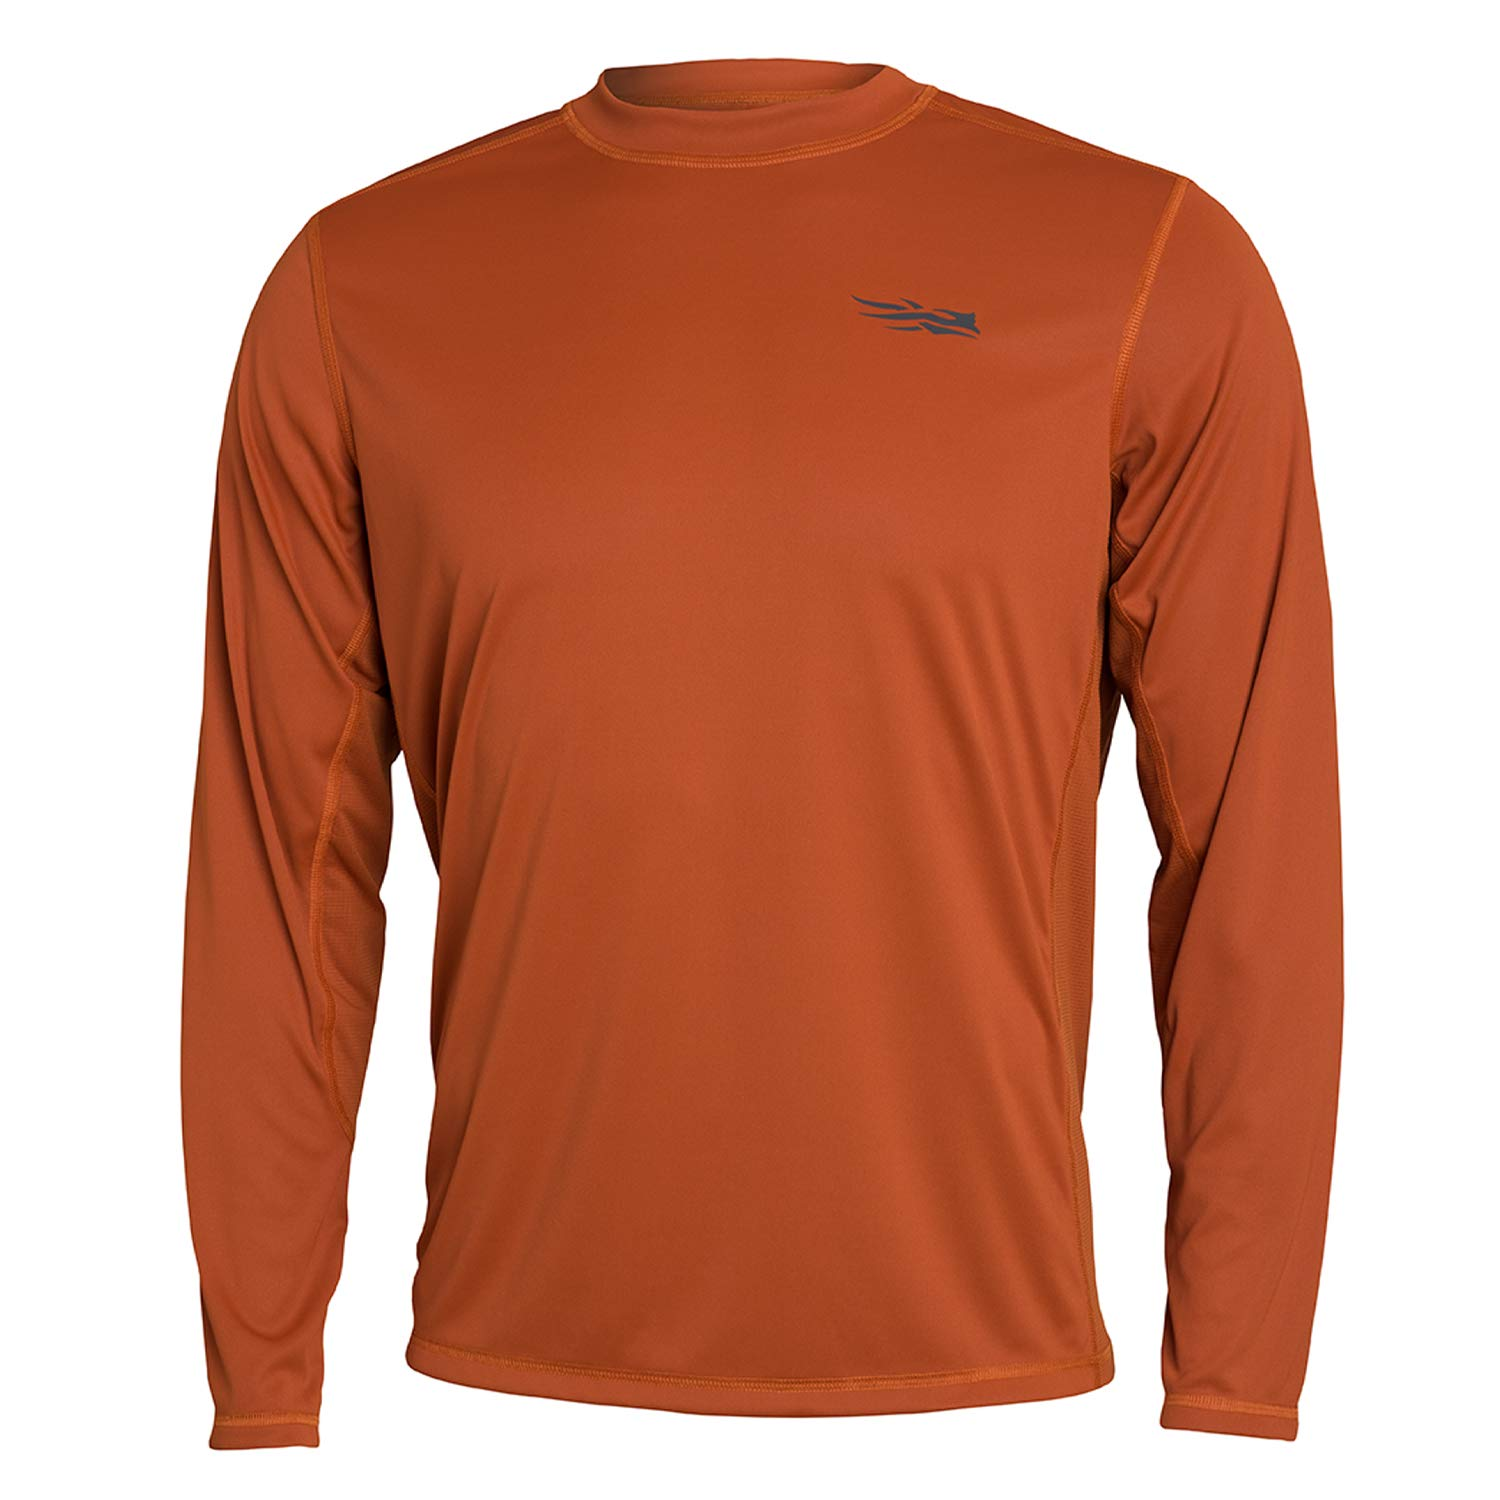 Canyon Redline Performance Shirt Long Sleeve